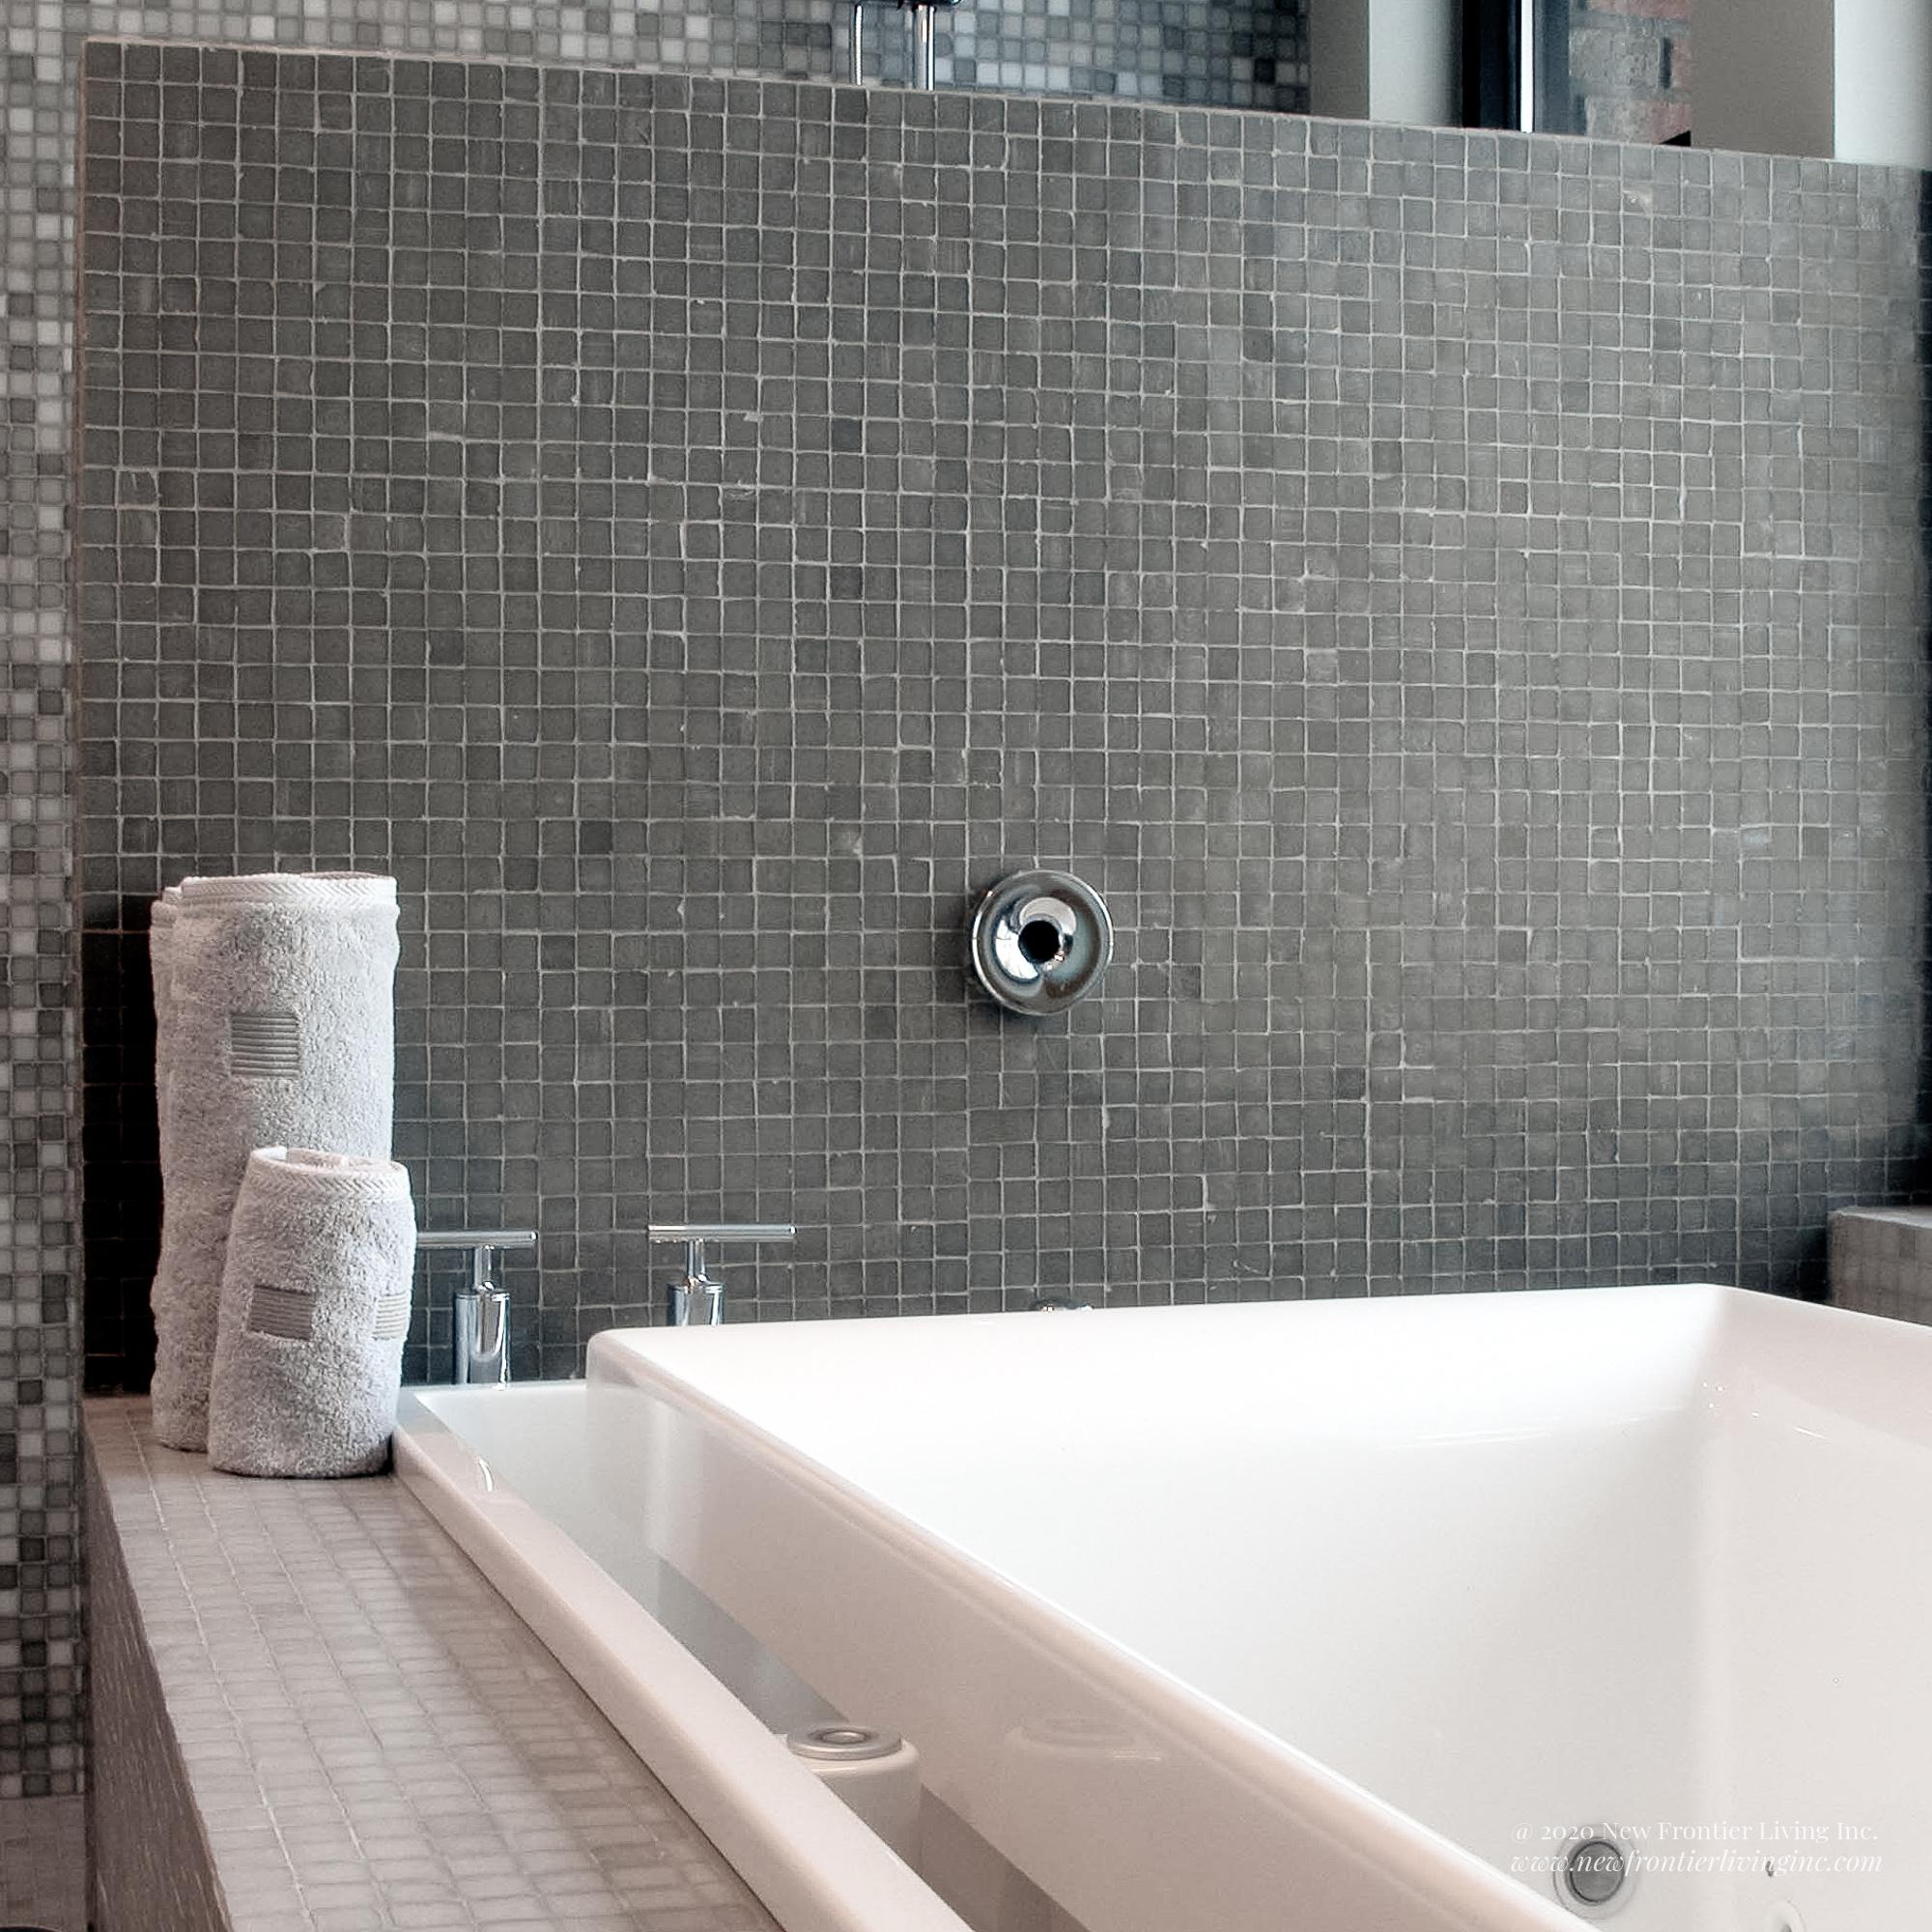 Close-up of ceramic tiles on the bathtub splash and two towels